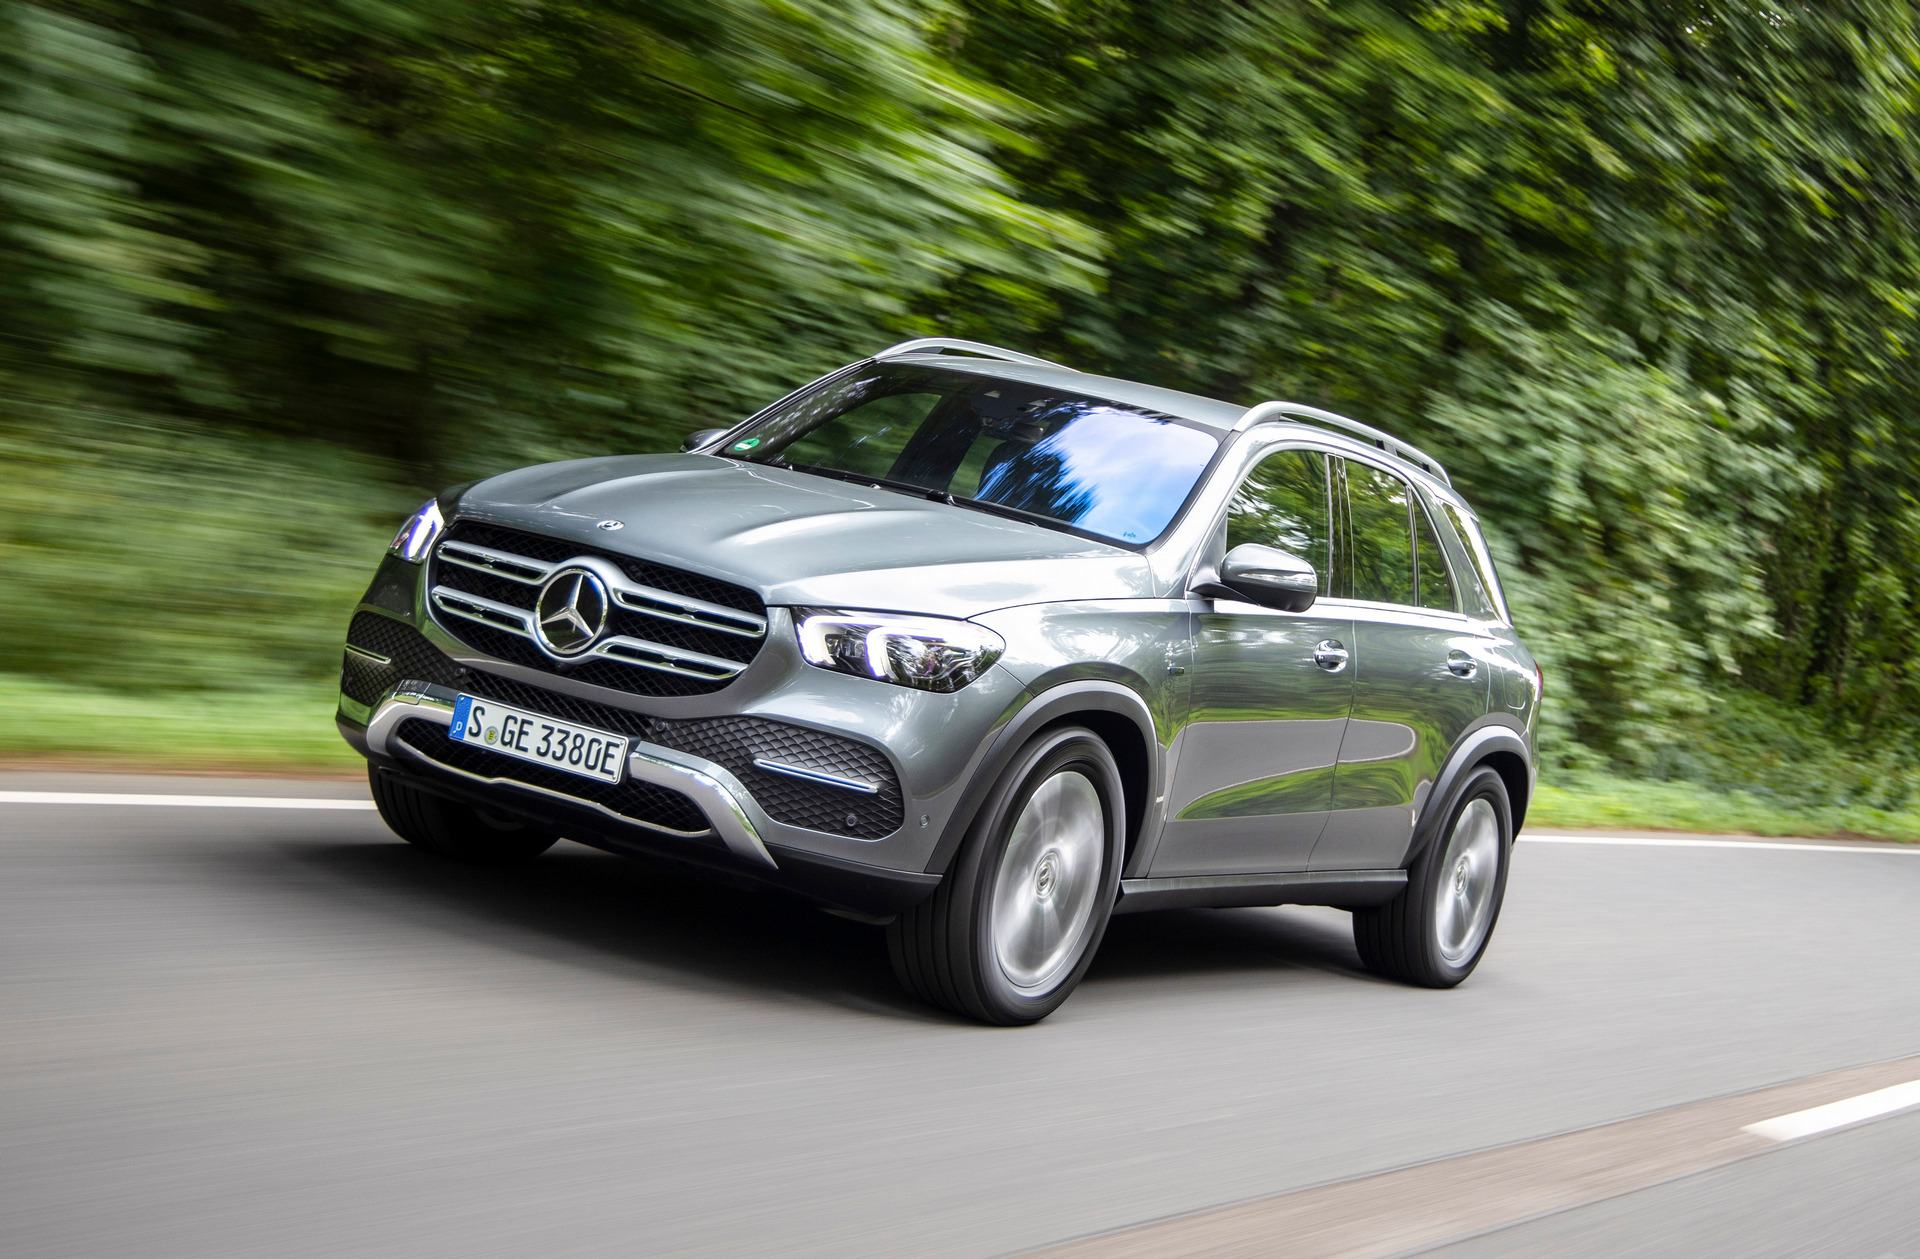 Mercedes GLE 350 de 4Matic